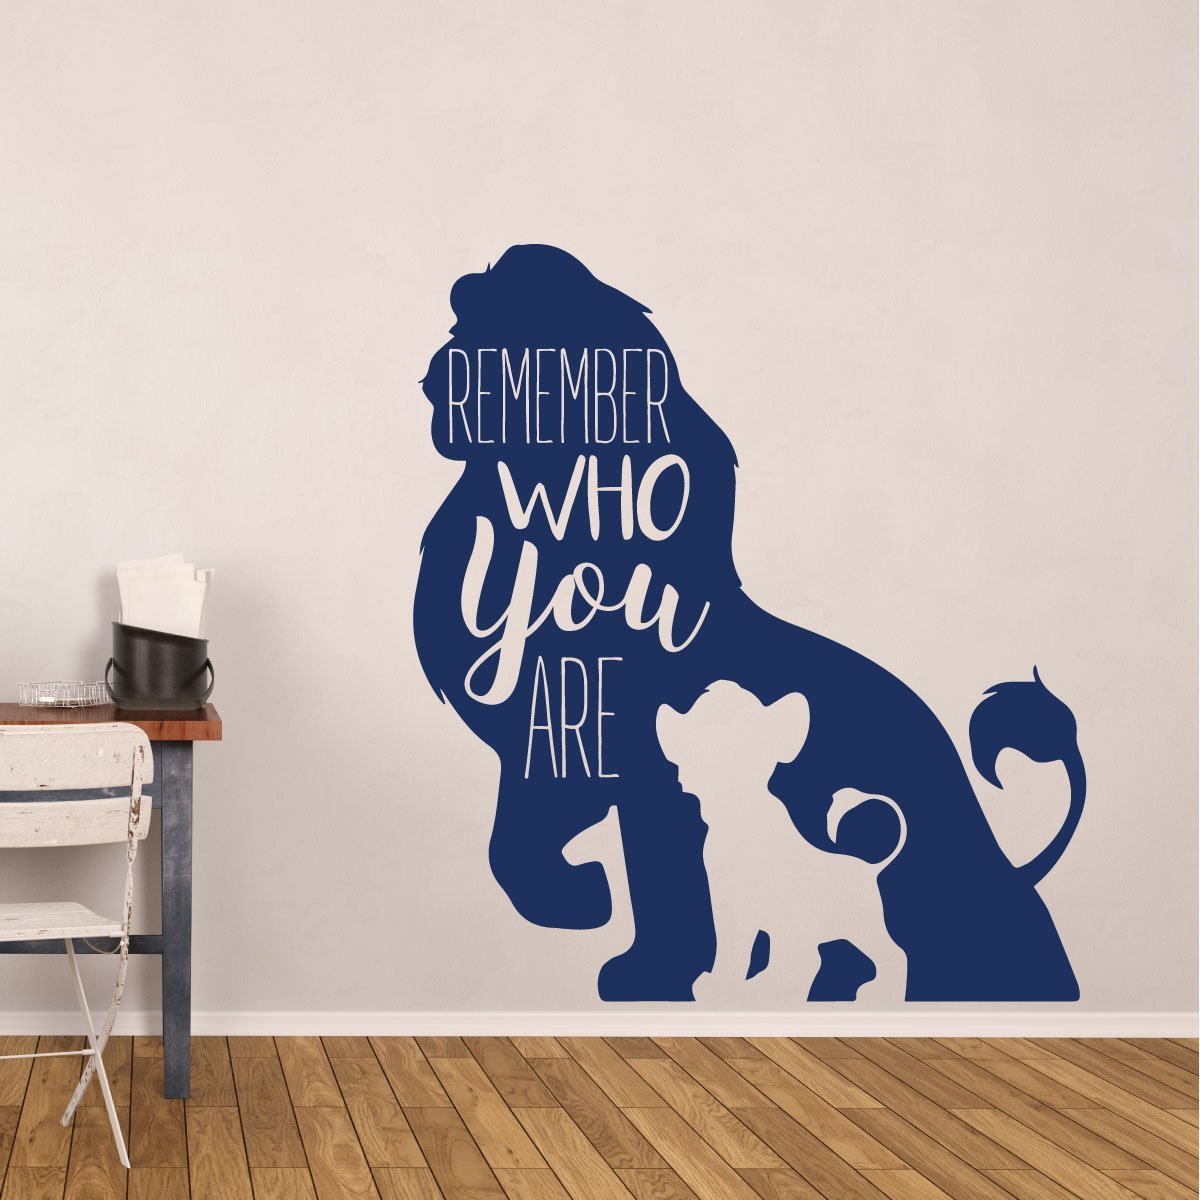 Simba Wall Decor - Disney The Lion King Decor- Remember Who You Are - Vinyl Decoration for Bedroom, Classroom, Playroom Decorations